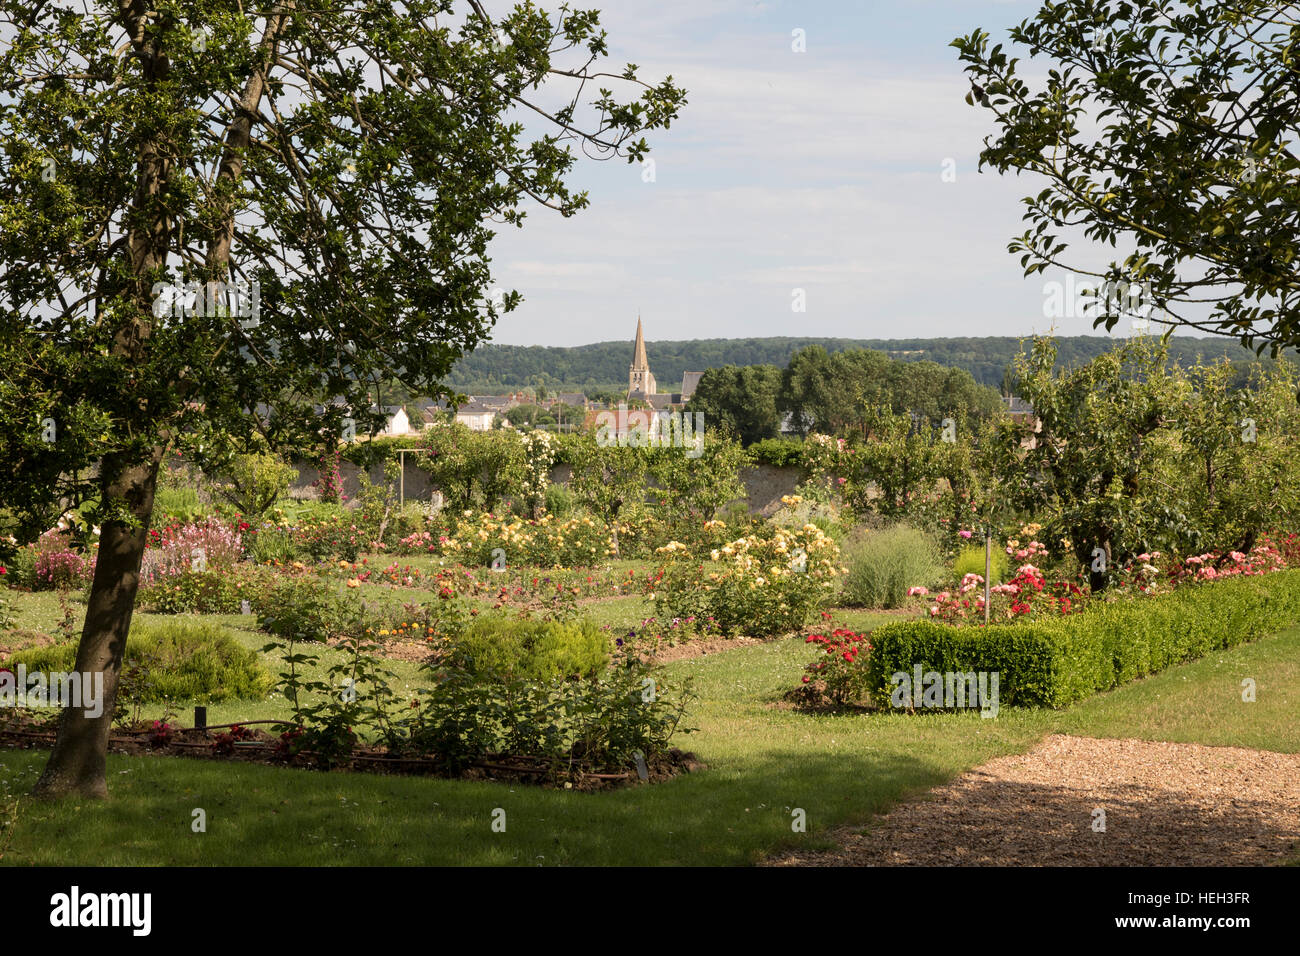 The Rose Garden at La Possonniere, birthplace of the poet Ronsard - Stock Image